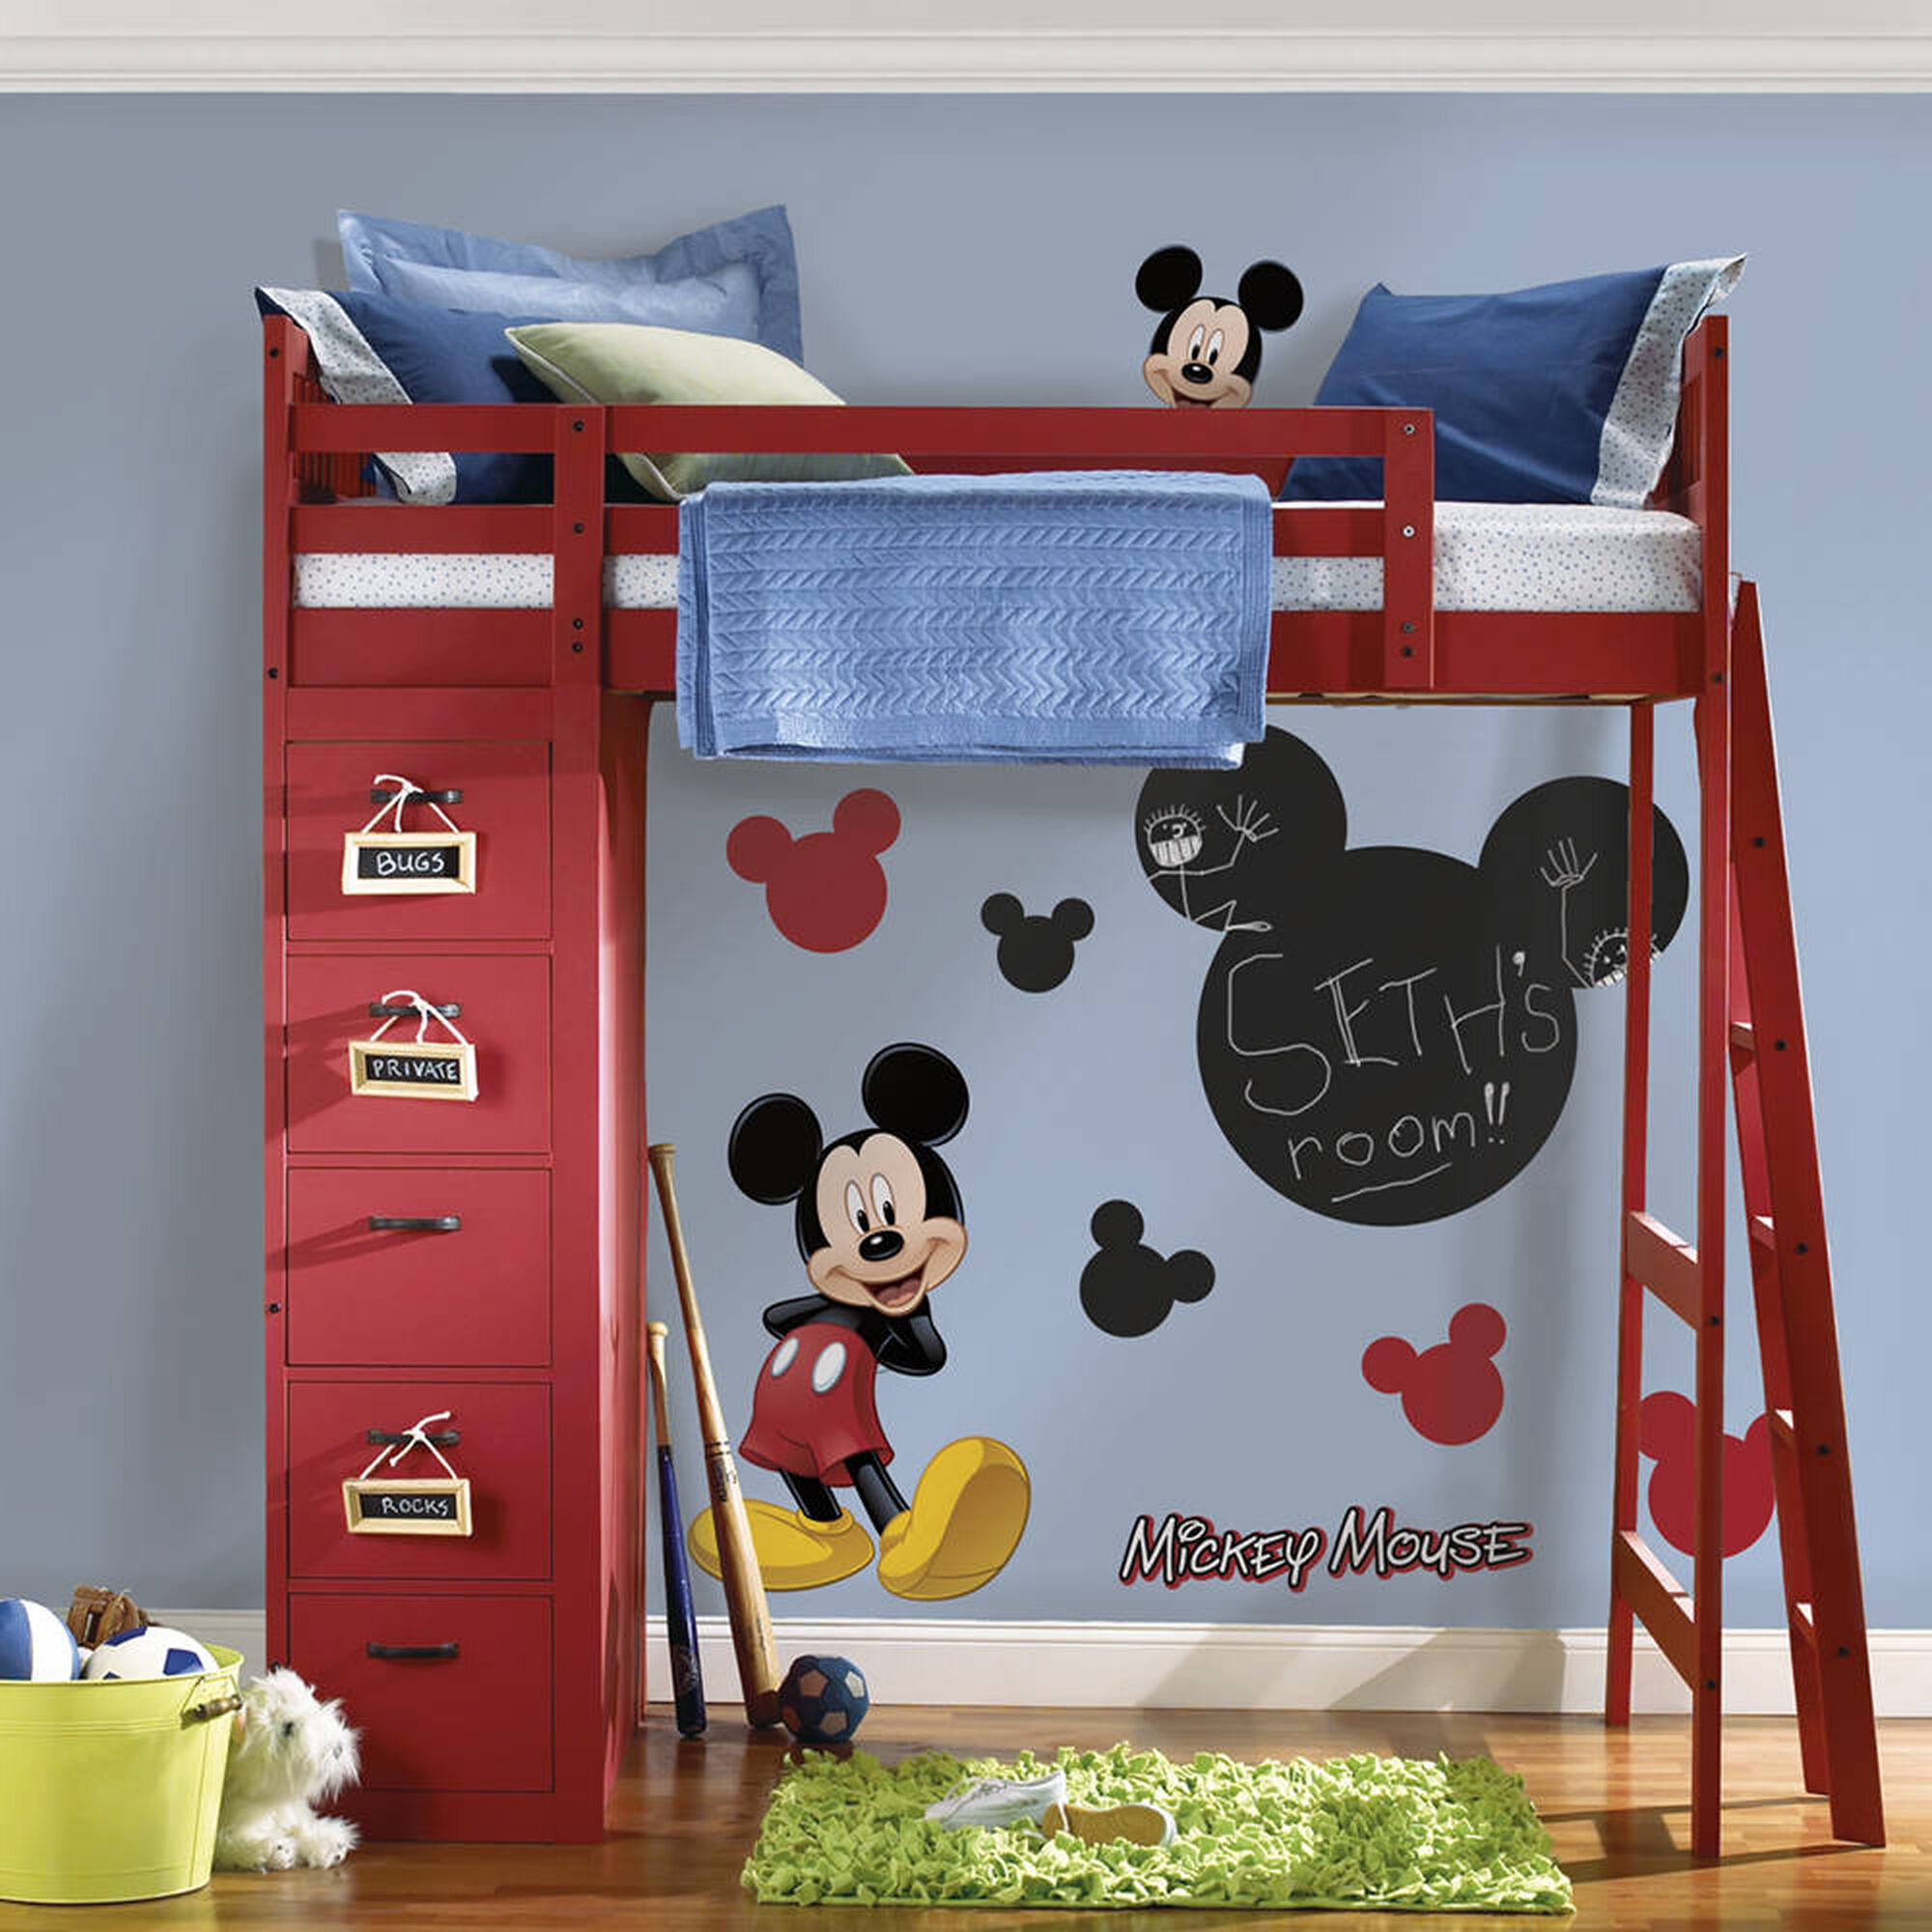 disney mickey mouse chalkboard peel and stick wall decals disney mickey mouse chalkboard peel and stick wall decals